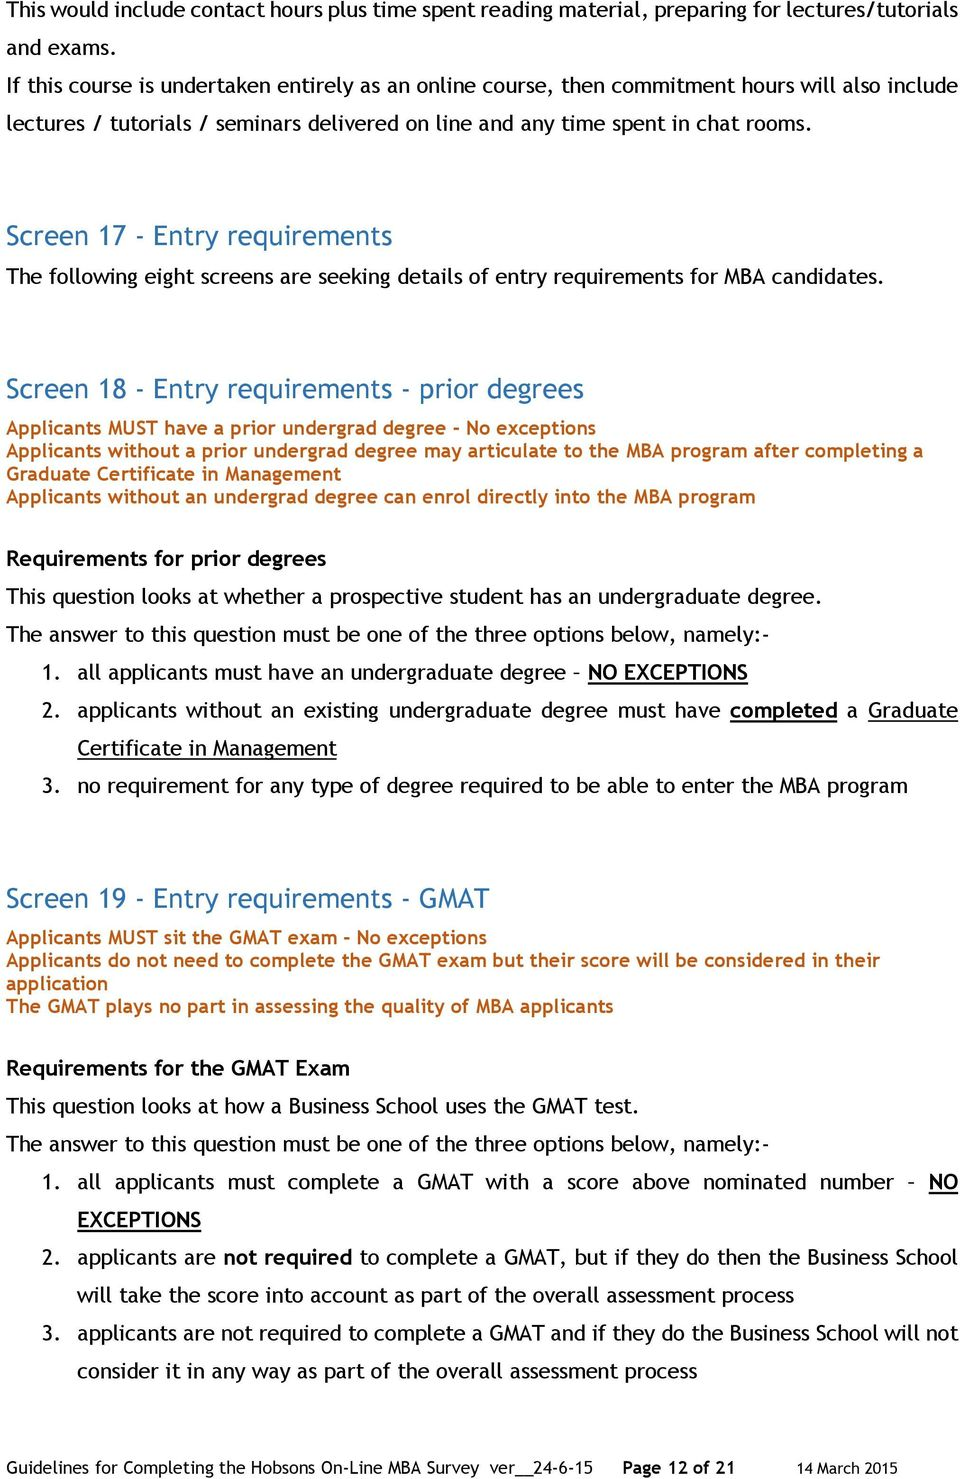 Screen 17 - Entry requirements The following eight screens are seeking details of entry requirements for MBA candidates.